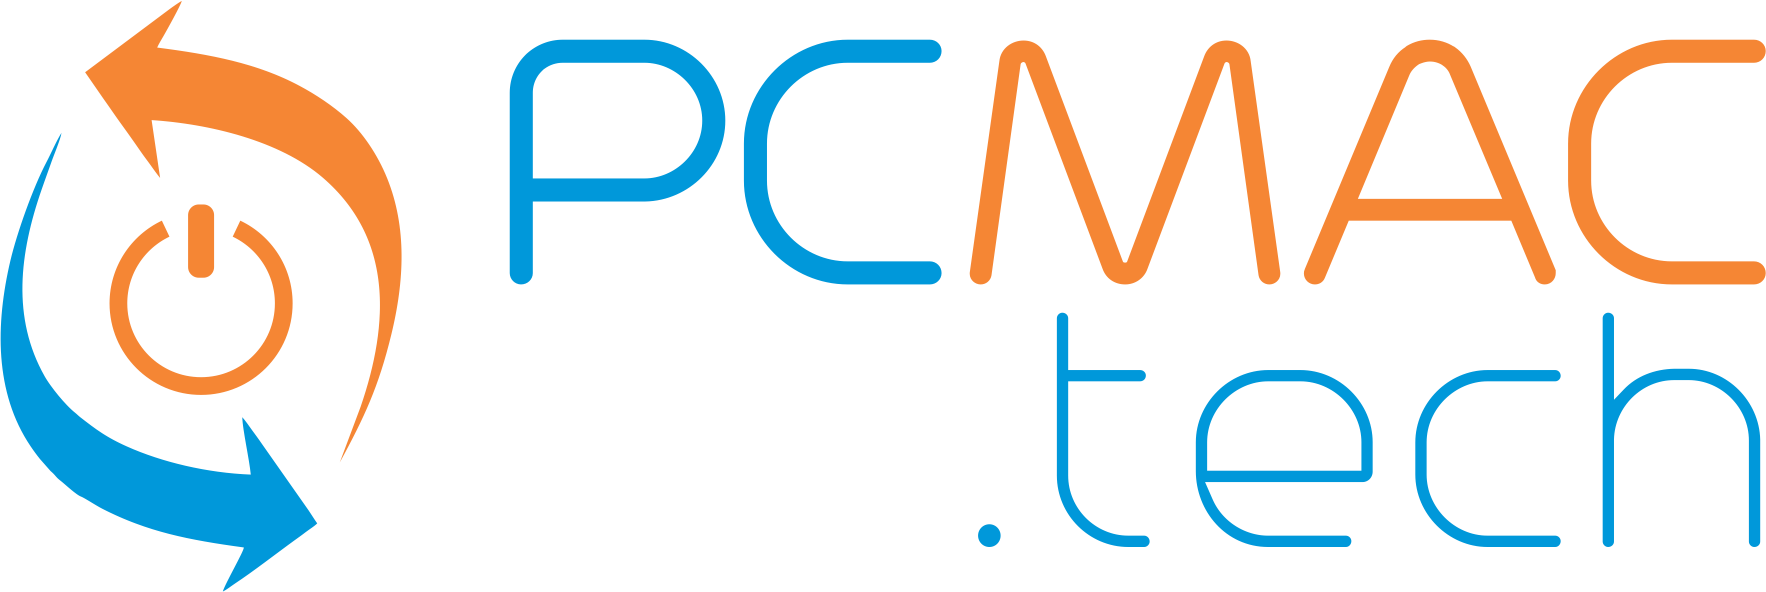 PCMac logo, computer repair, tech support, PC repair, Mac repair, network cabling, WiFi, cloud backup, Ottawa ON